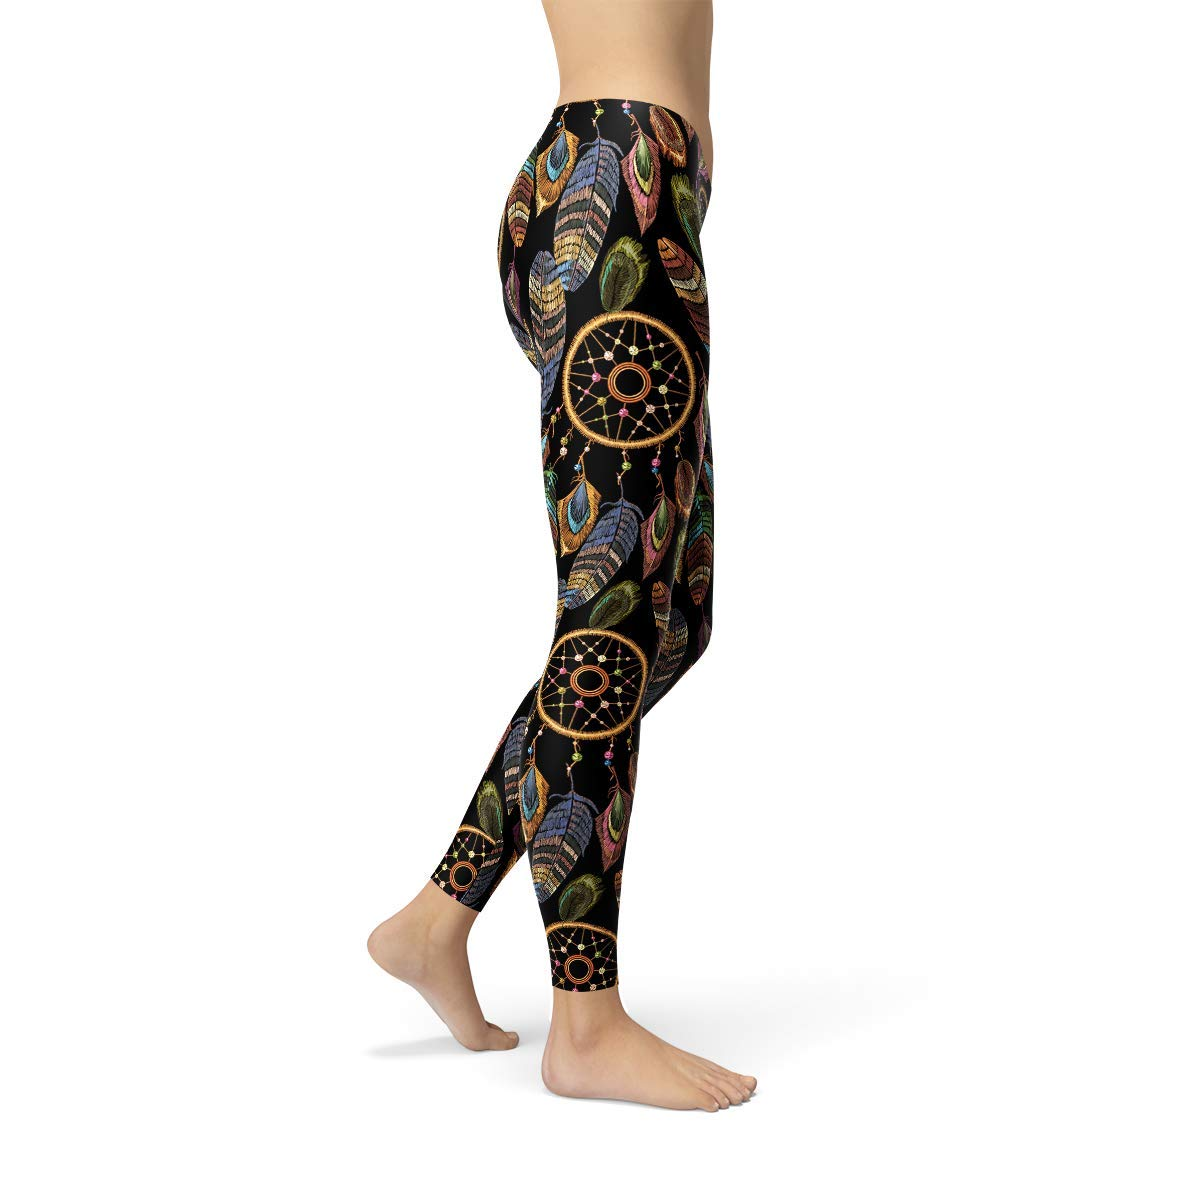 Dream Catchers Leggings for Women Native American Feather Dreamcatchers Yoga Pants